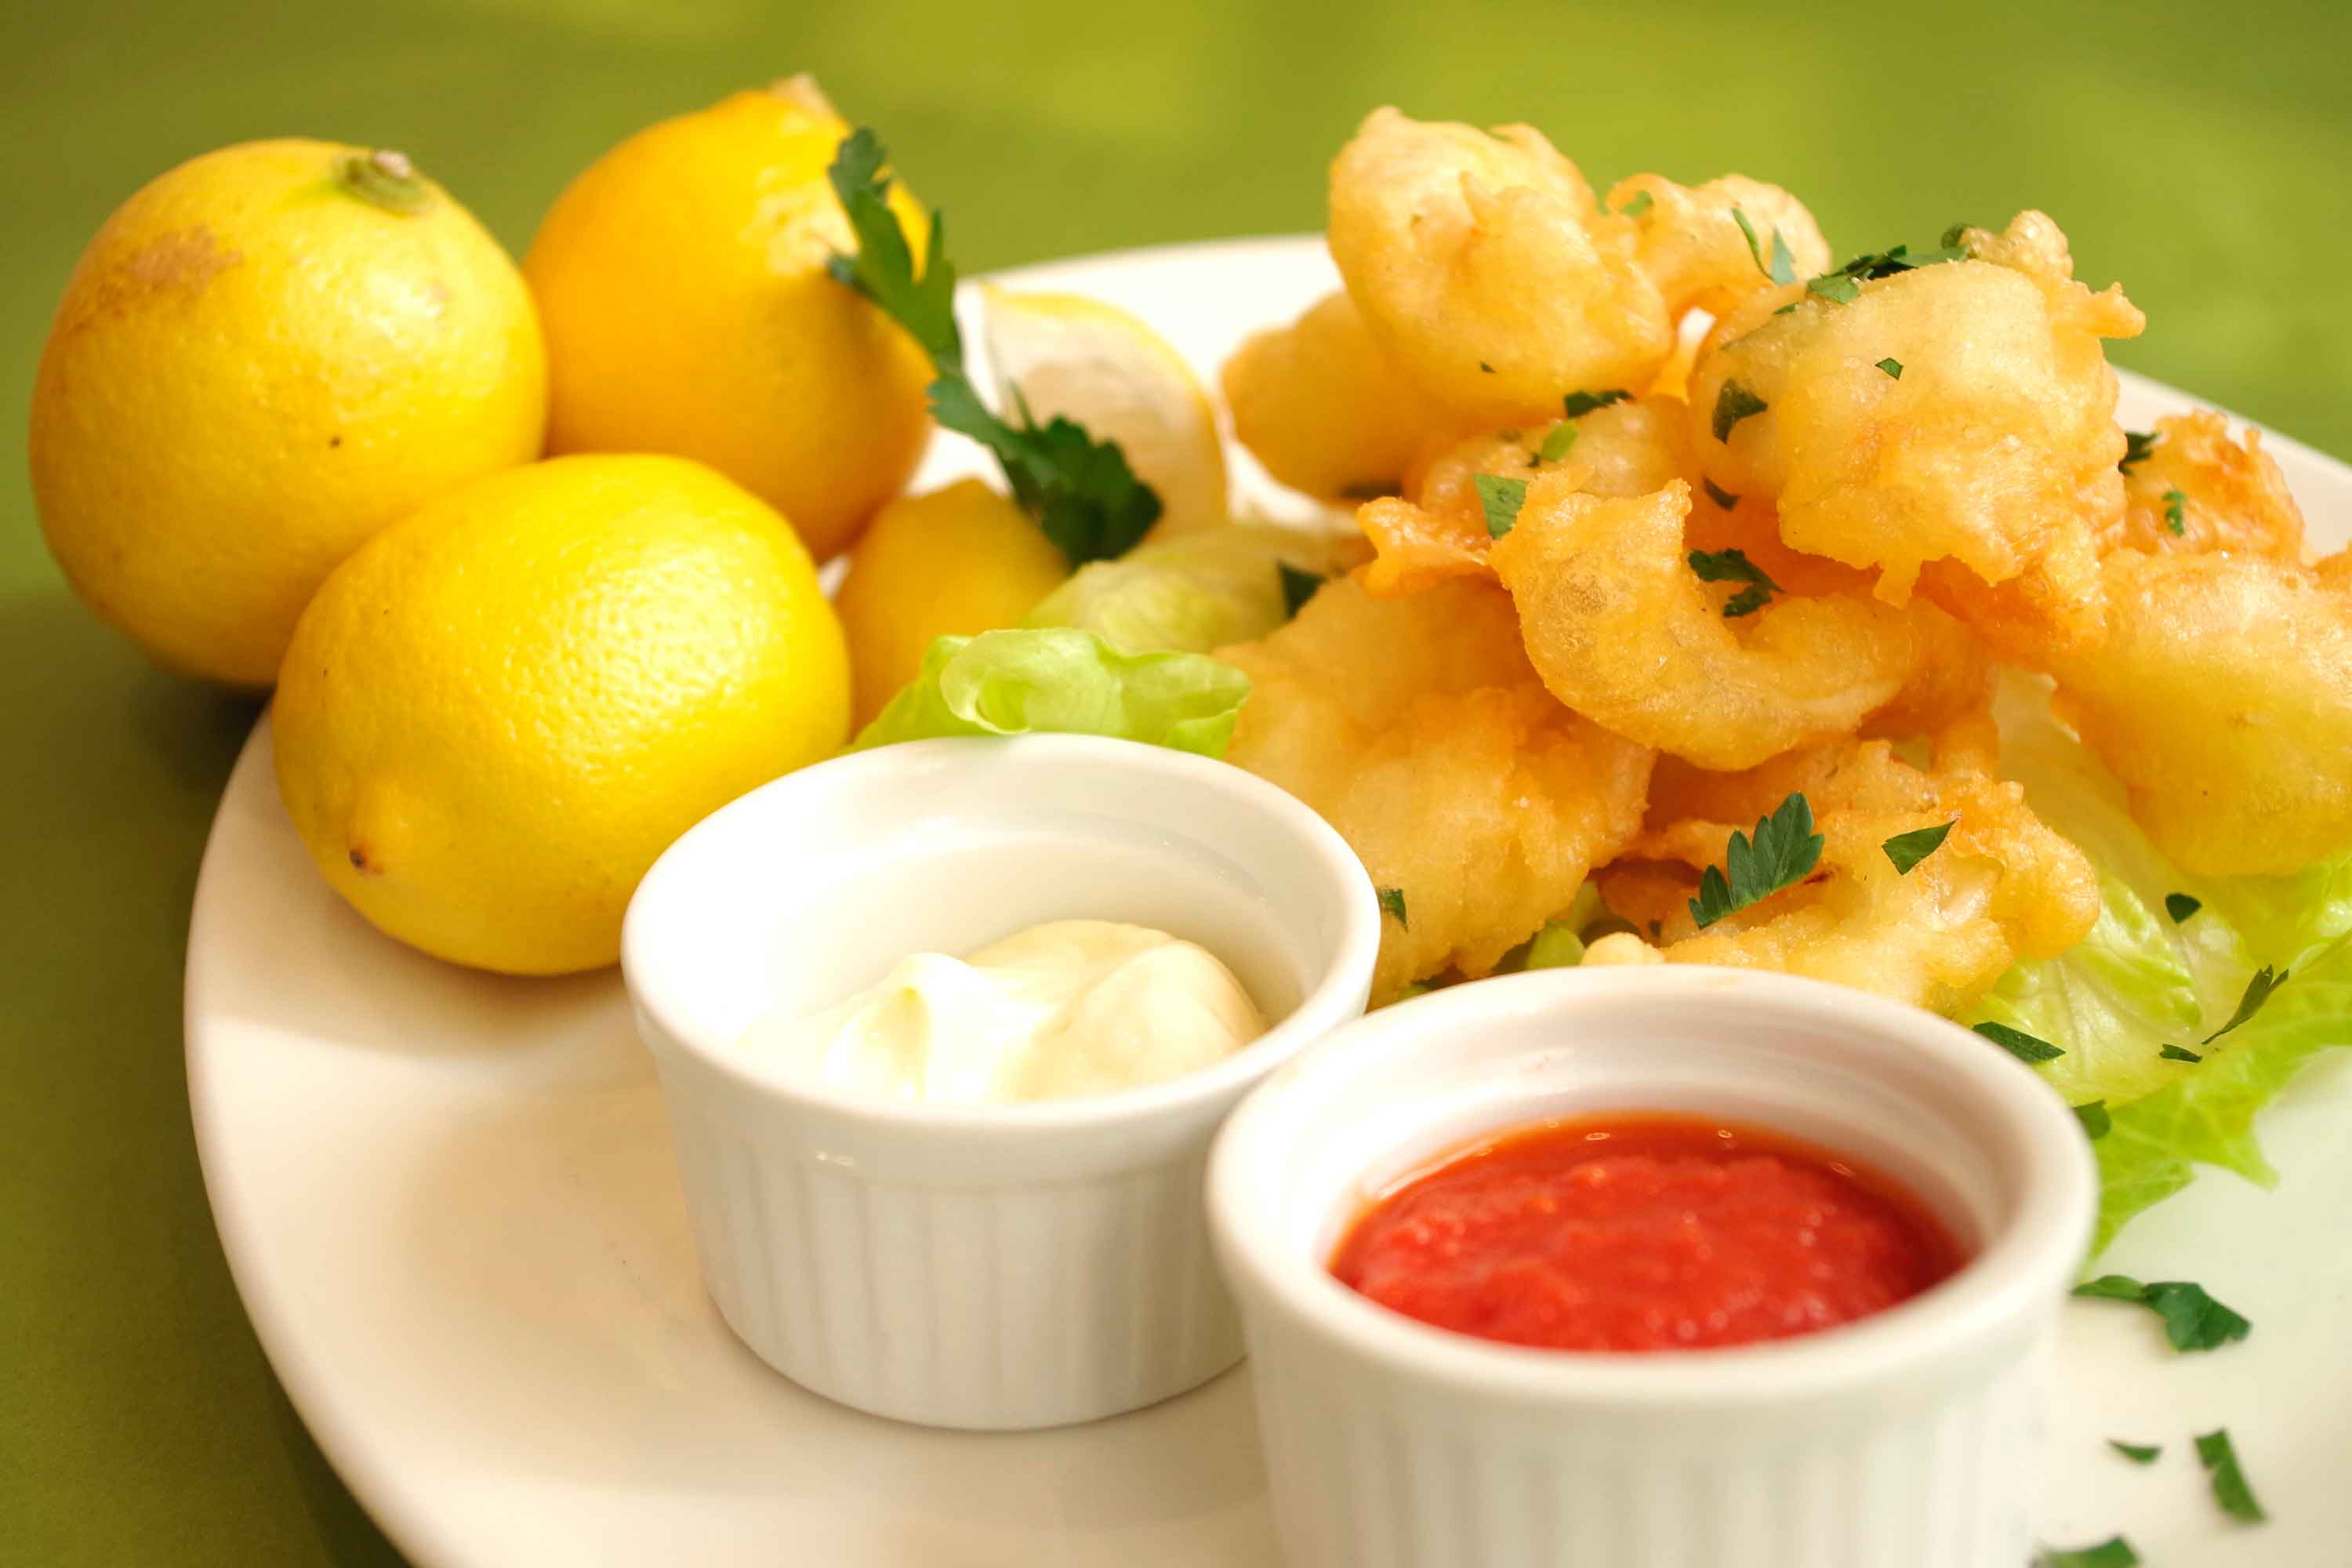 Carpaccio - Calamari fritti - lightly buttered and deep fried calamari, with a side of marinara sauce or lemon mayonnaise